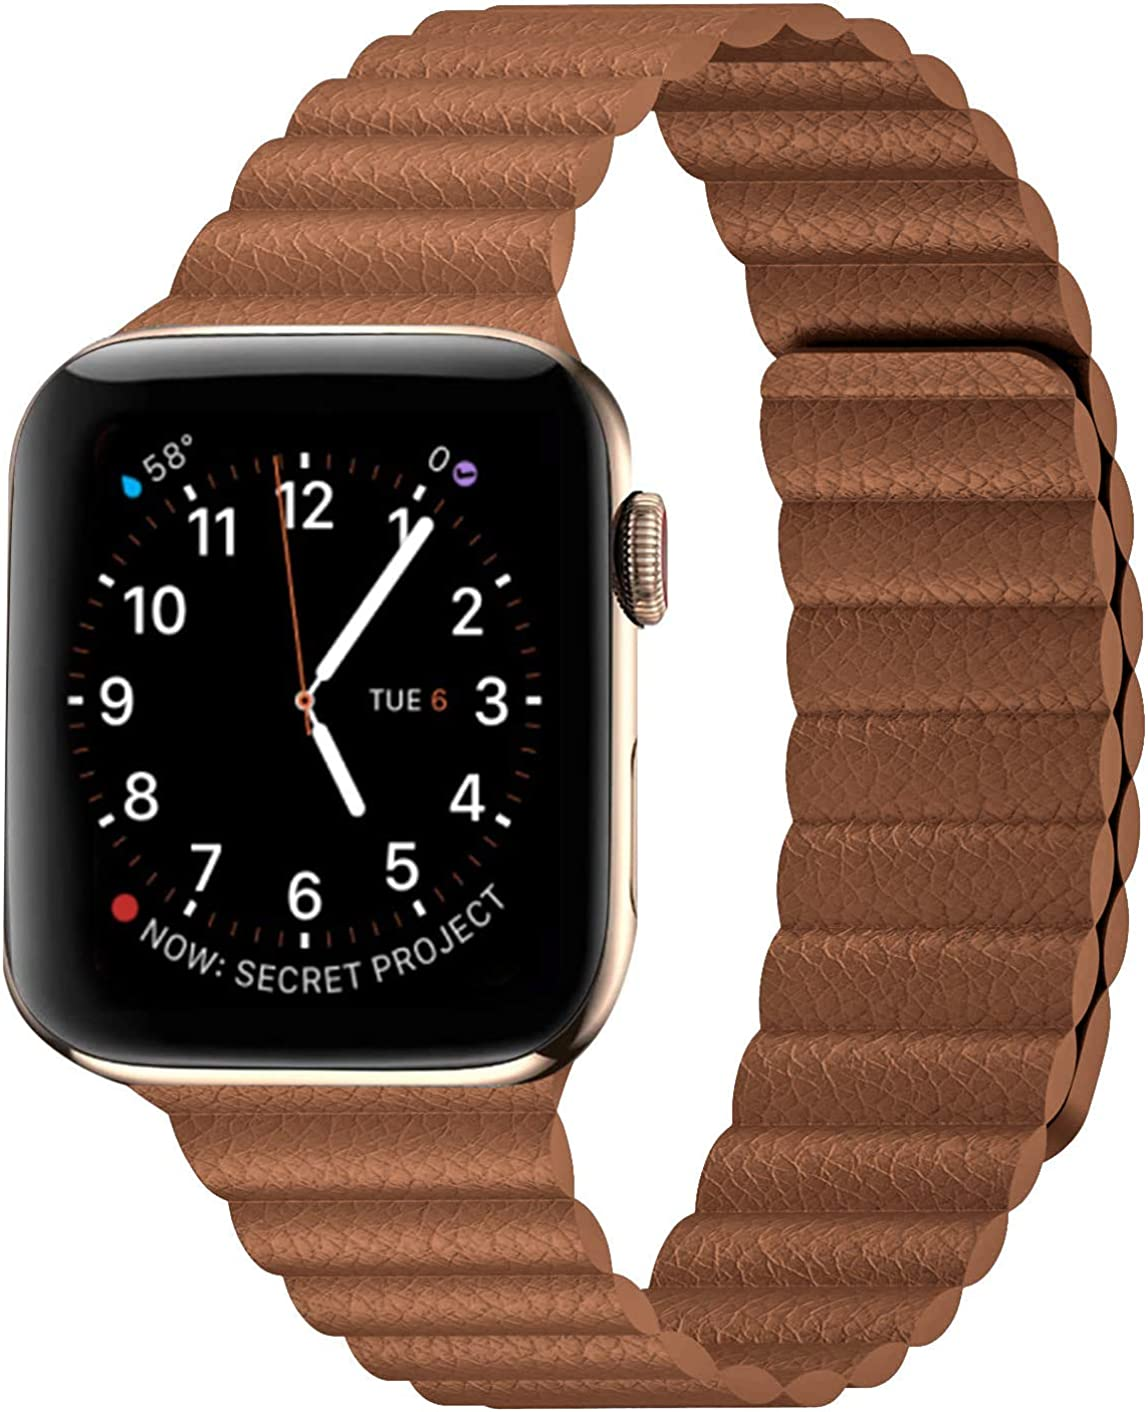 Circoclve Compatible with Apple Watch Magnetic Band Leather 44mm 42mm, Adjustable Loop Strap with Magnetic Closure for iWatch Series 6/5/4/3/2/1/SE